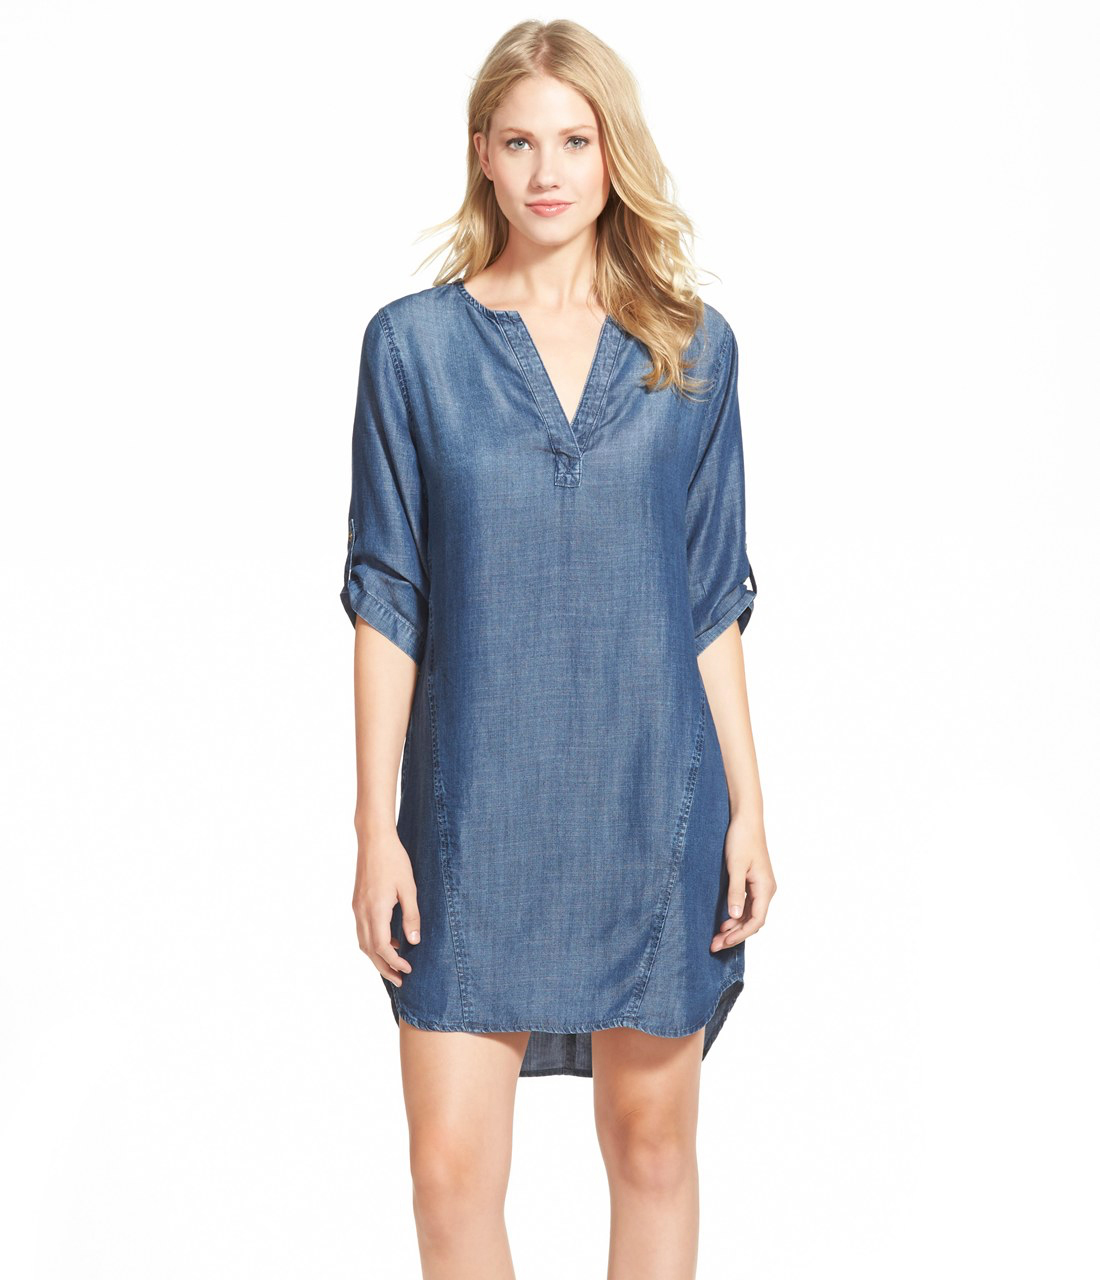 Chambray Shift Dress from Nordstrom